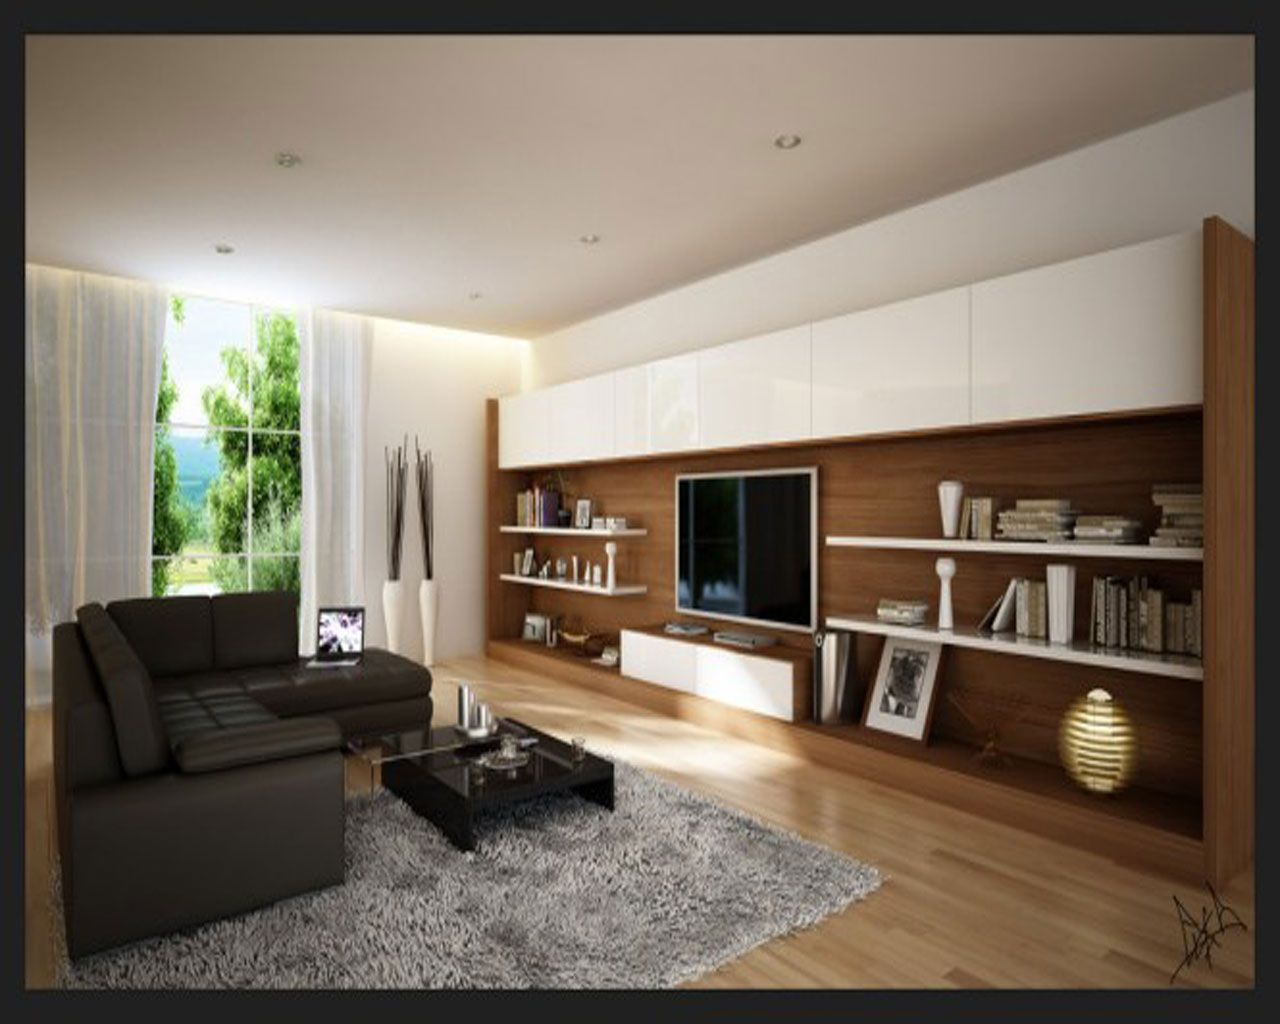 living-room-style-design | Roomspiration | Pinterest | Living room ...